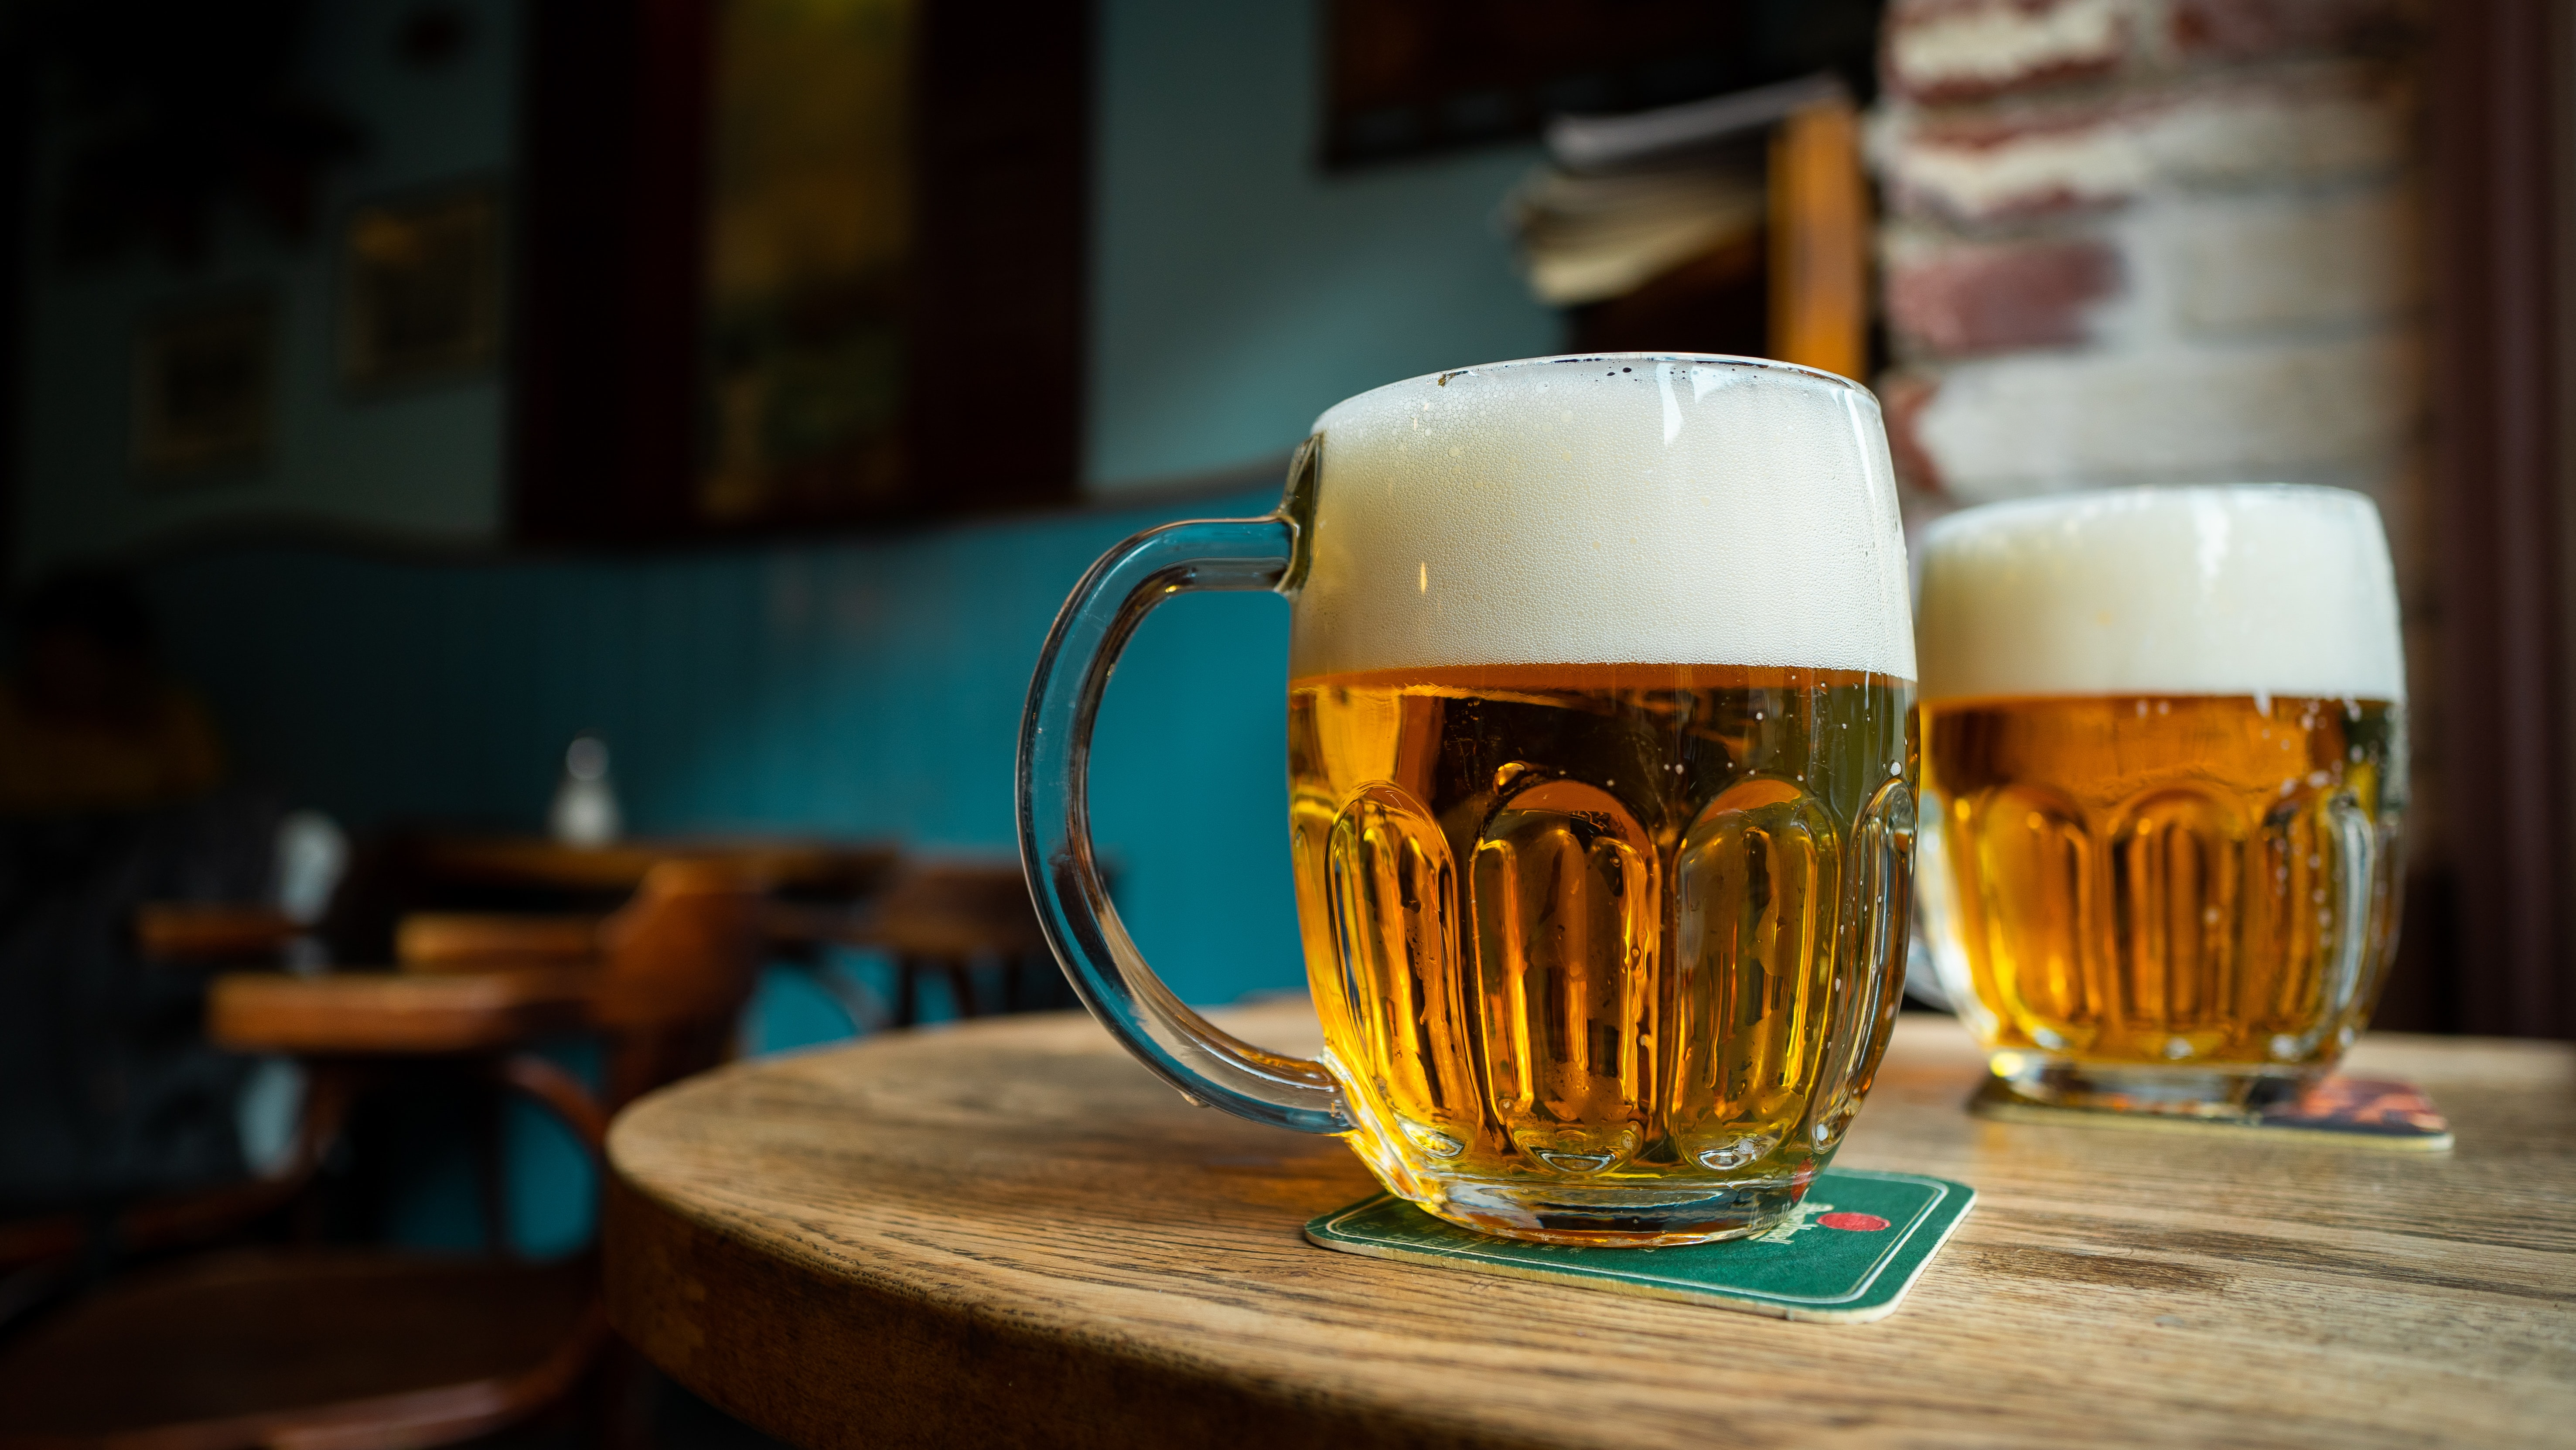 two mugs of beer on a table